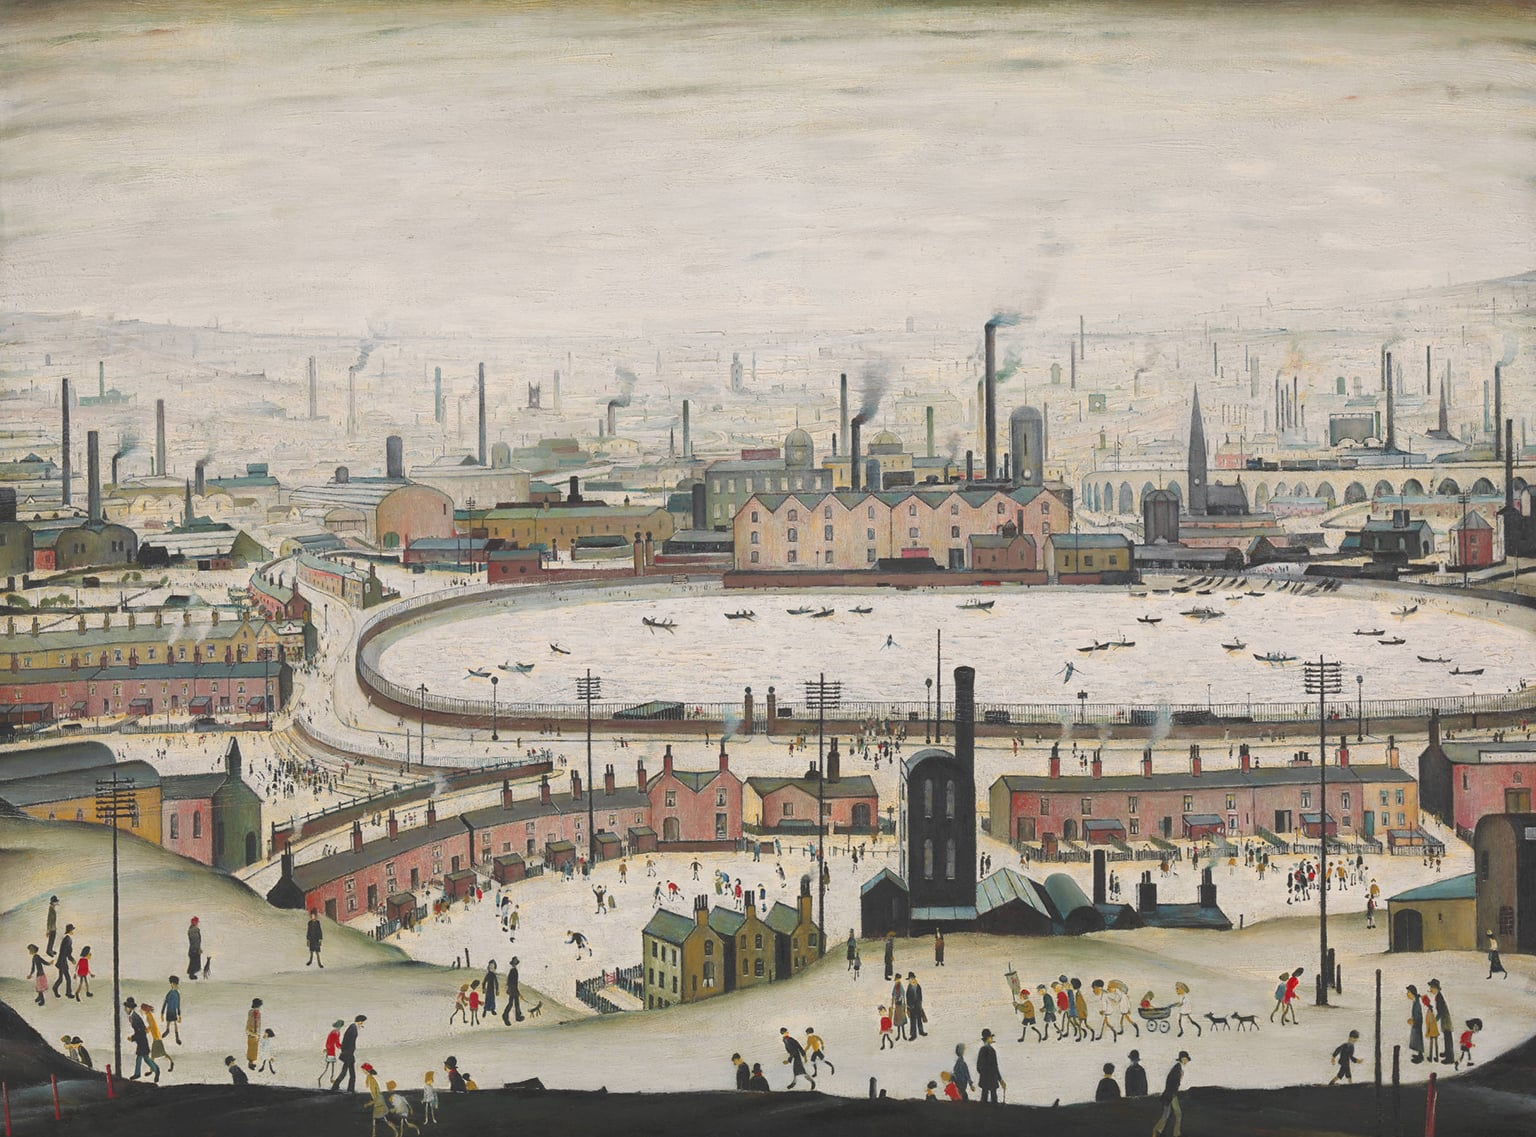 2. The Pond, 1950. Tate Britain - © The estate of L.S. Lowry/DACS 2016